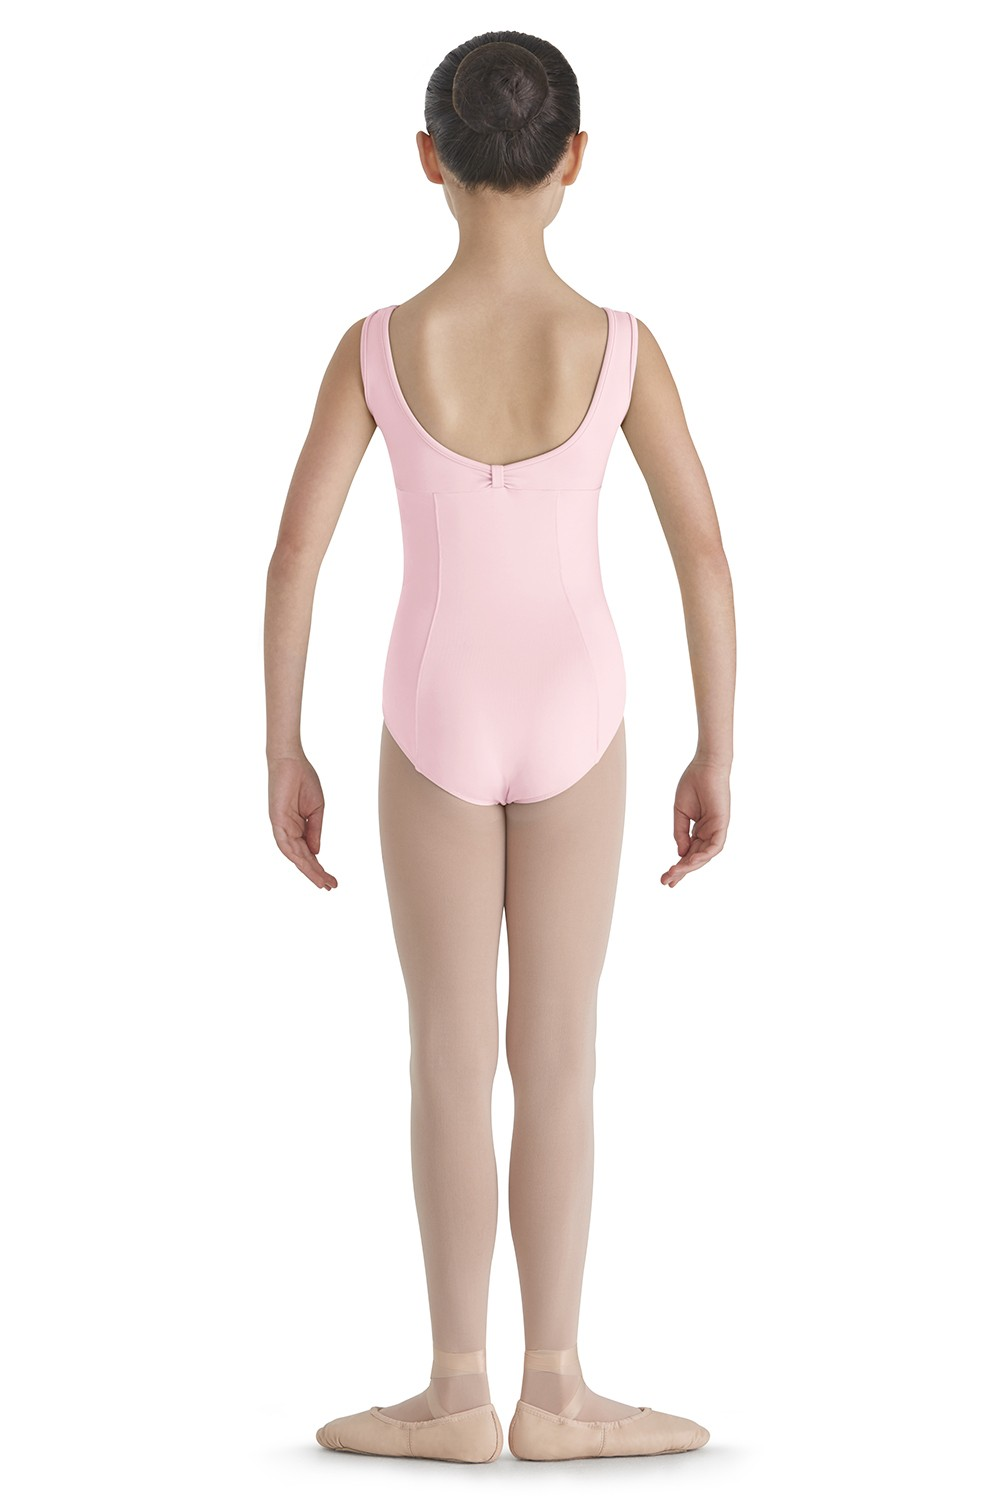 Itzel Children's Dance Leotards